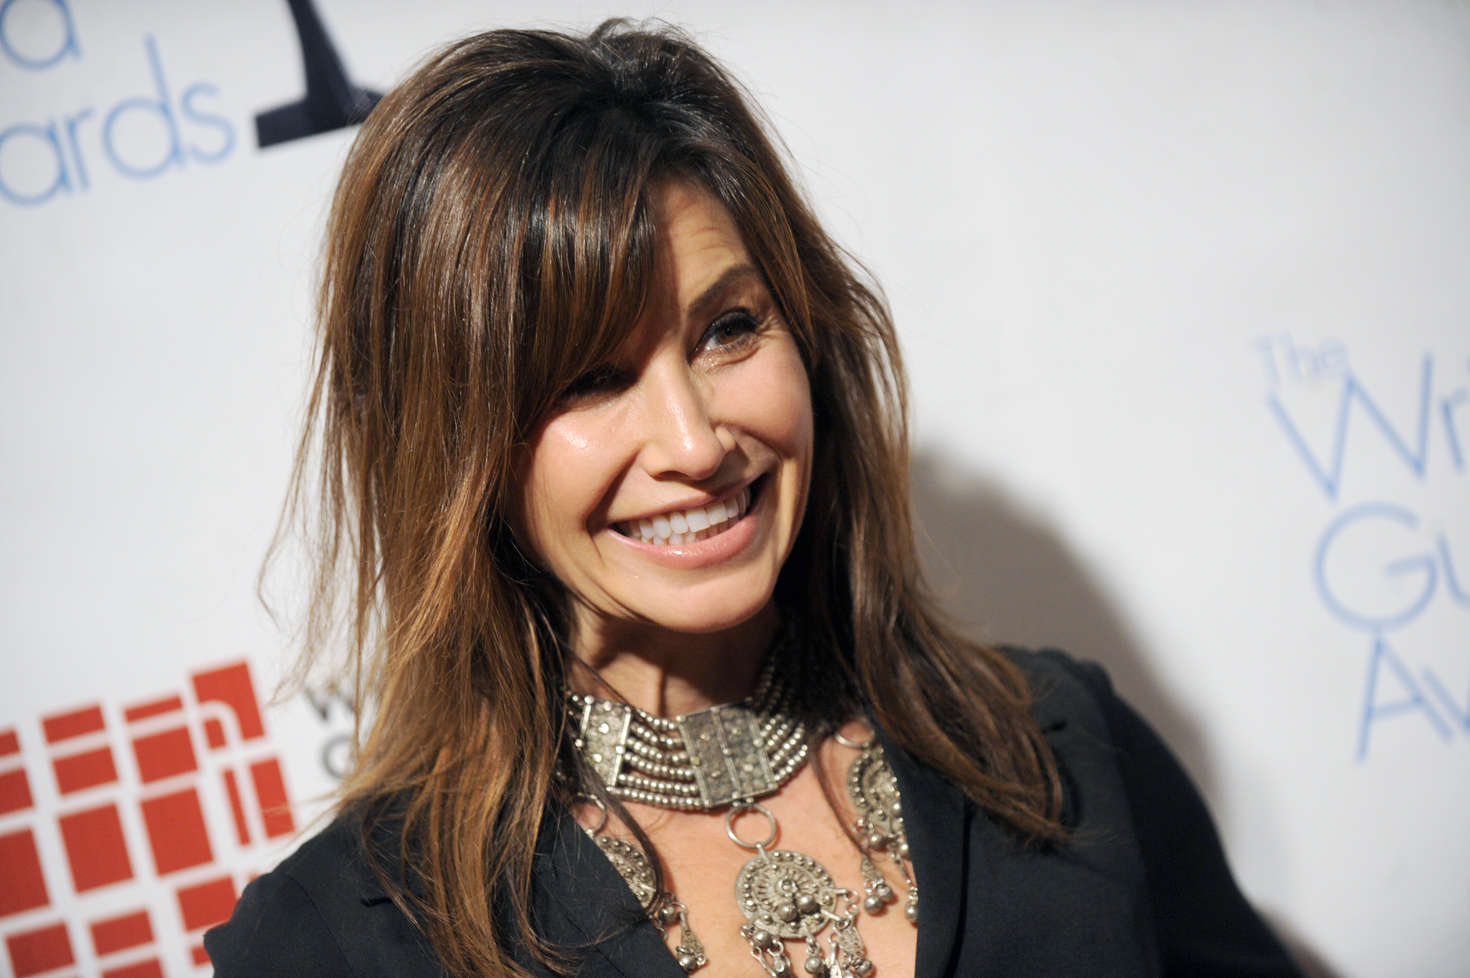 Gina Gershon Writers Guild Awards in New York